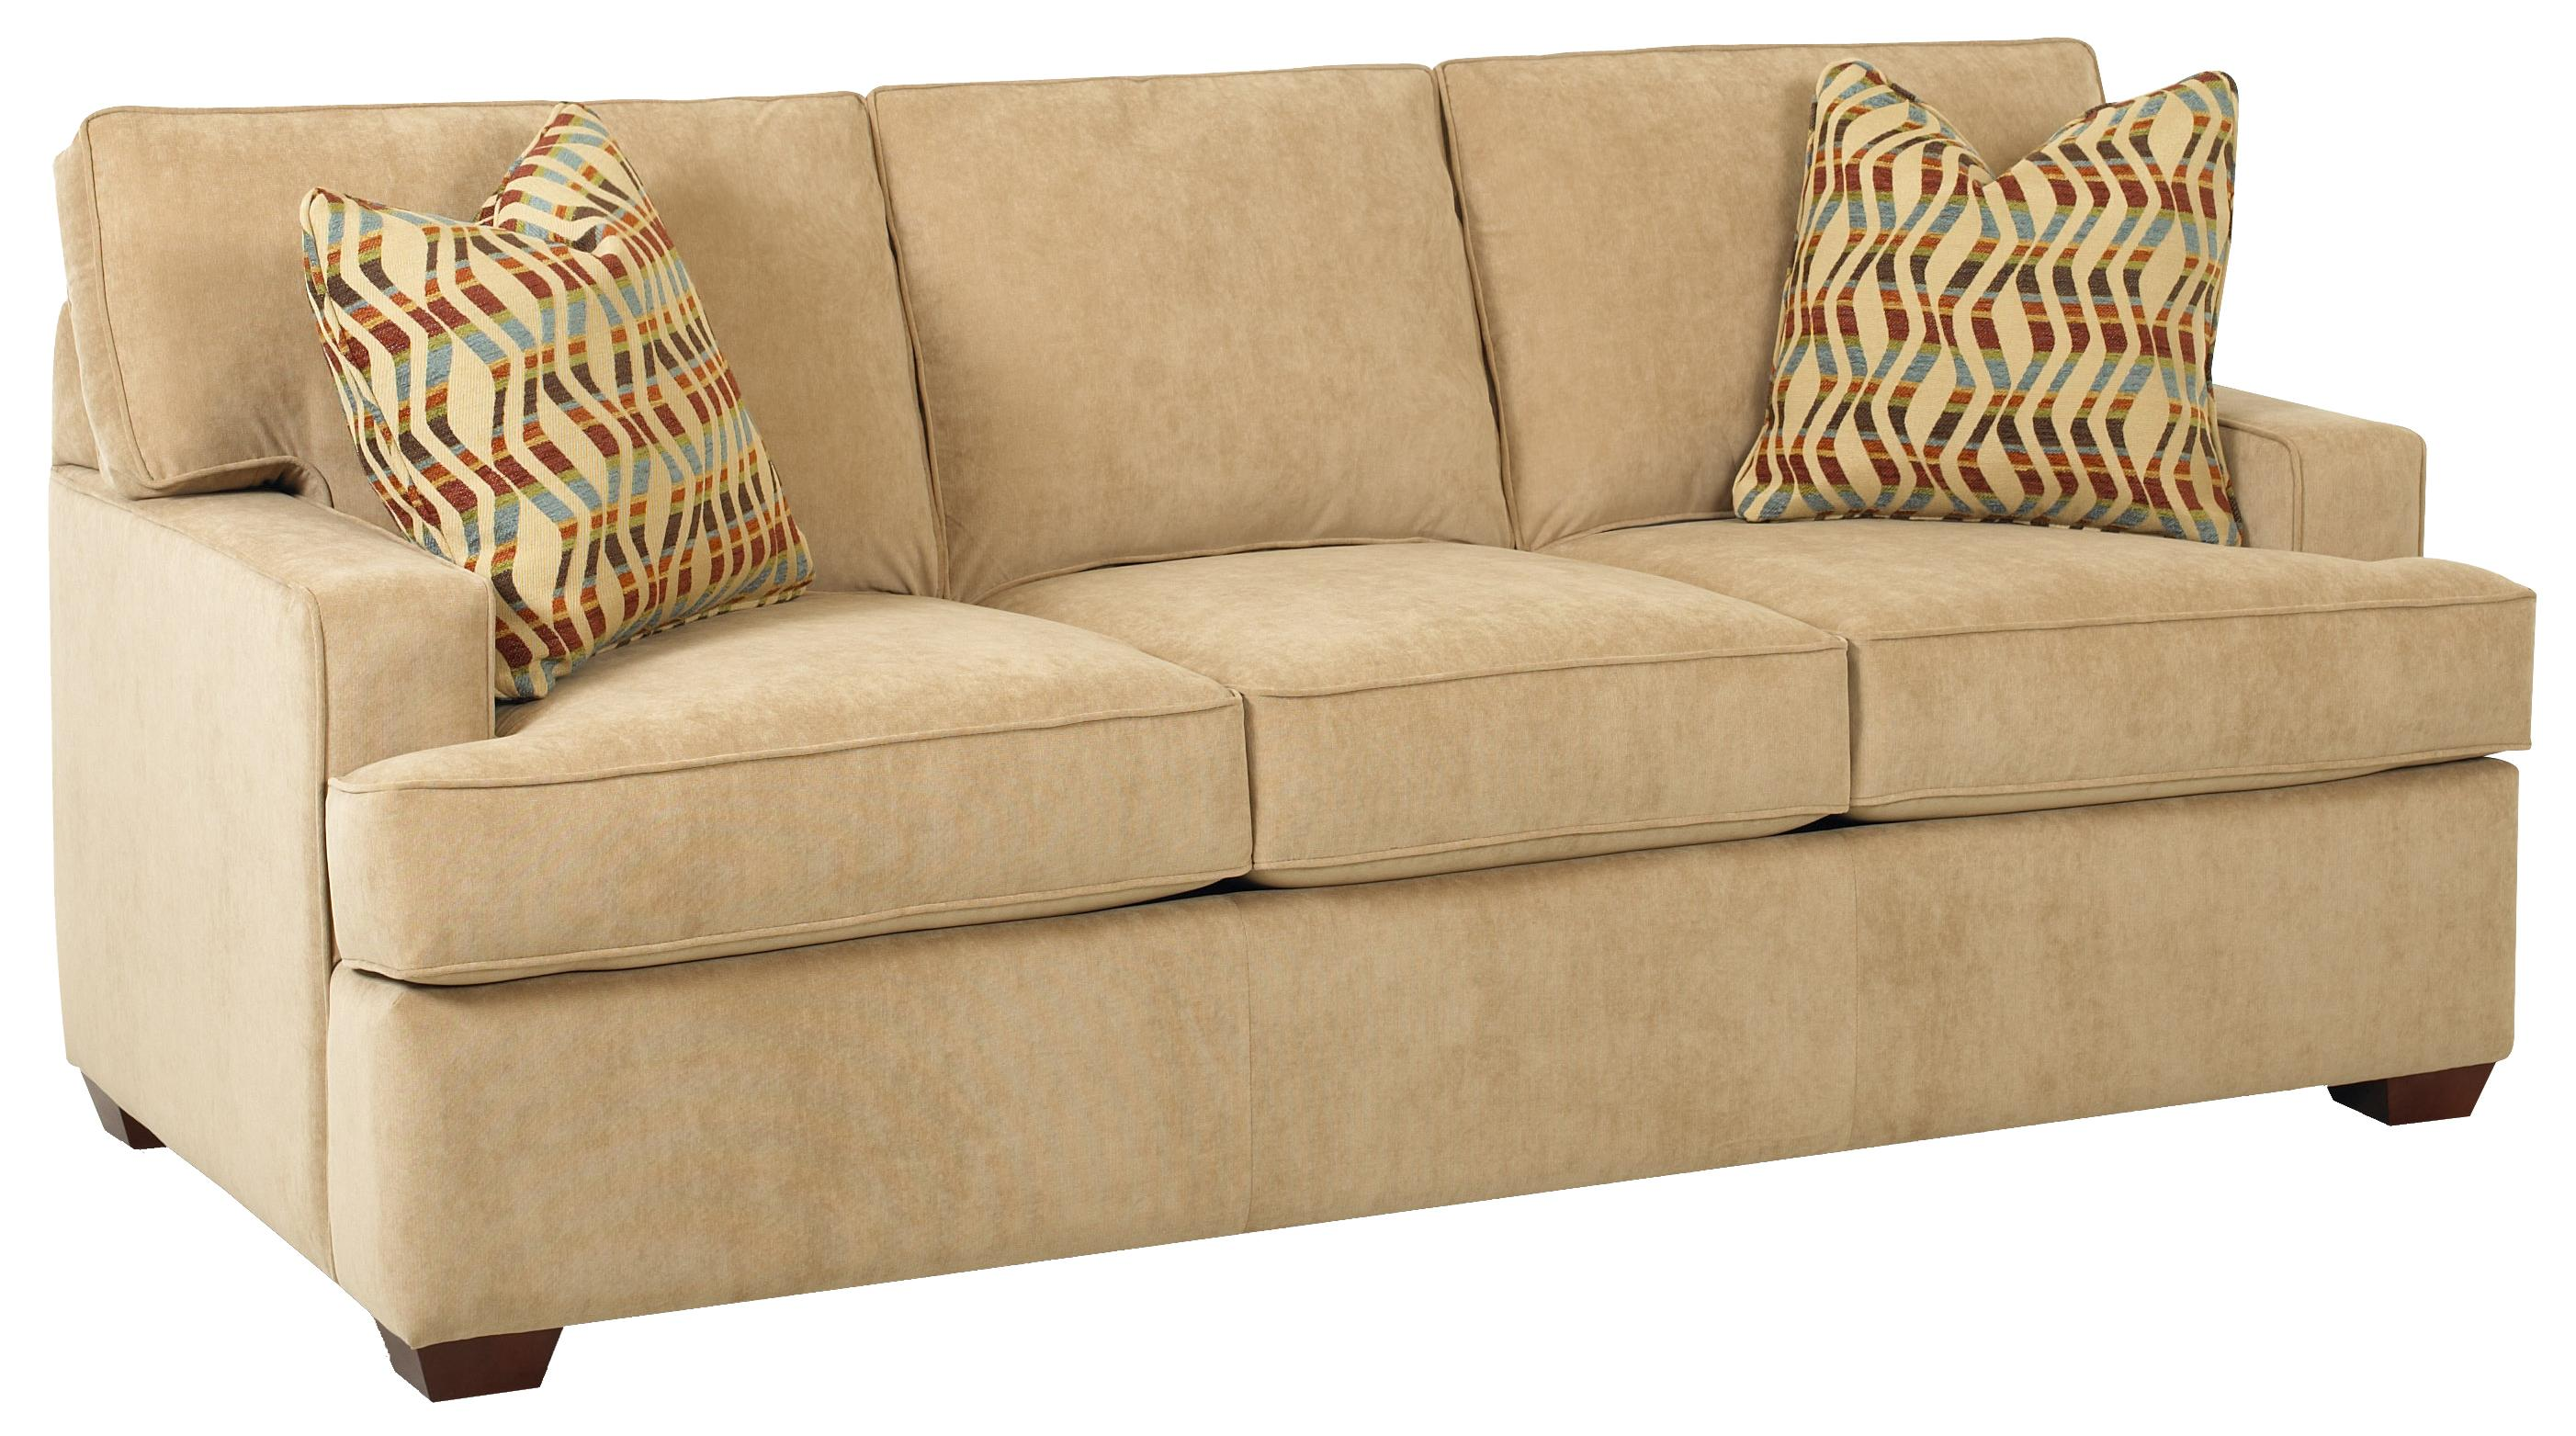 Contemporary Three Seat Sofa By Klaussner Wolf And Gardiner Wolf Furniture